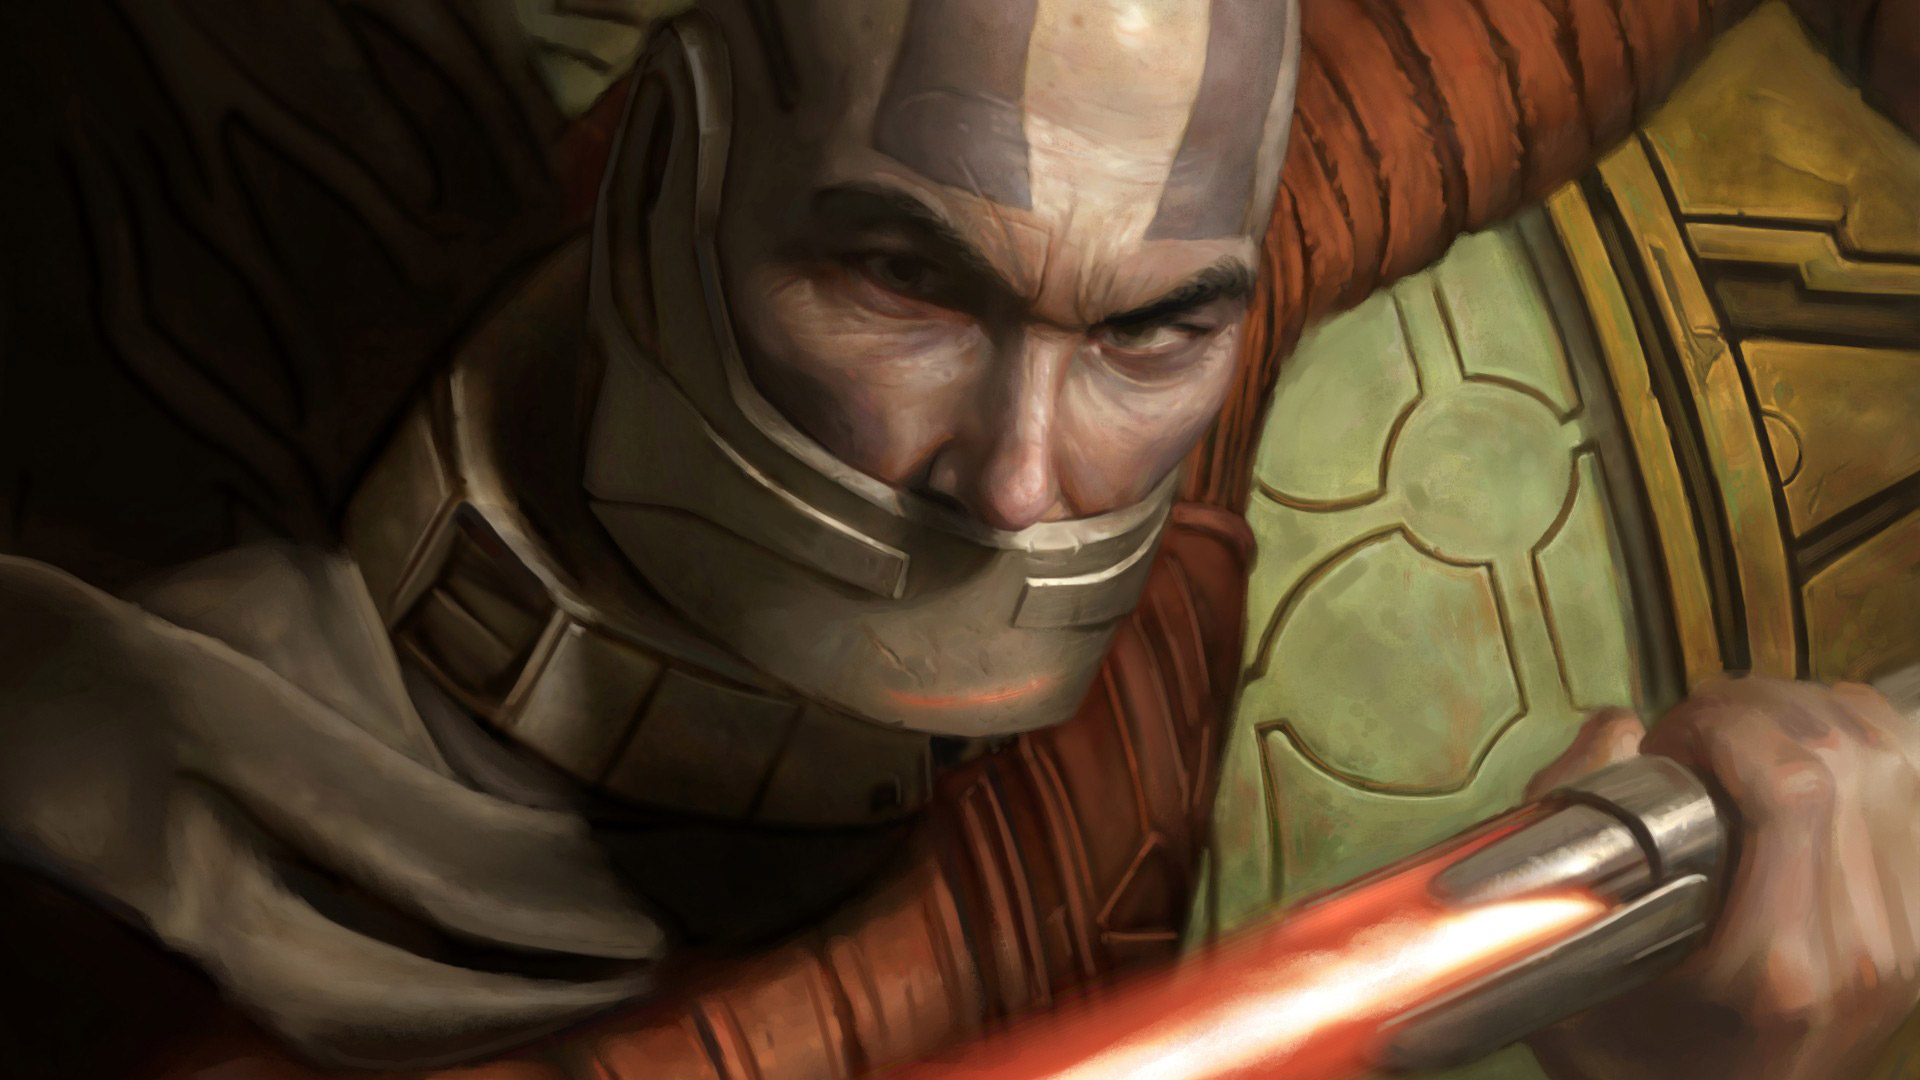 Free Star Wars: Knights of the Old Republic Wallpaper in 1920x1080